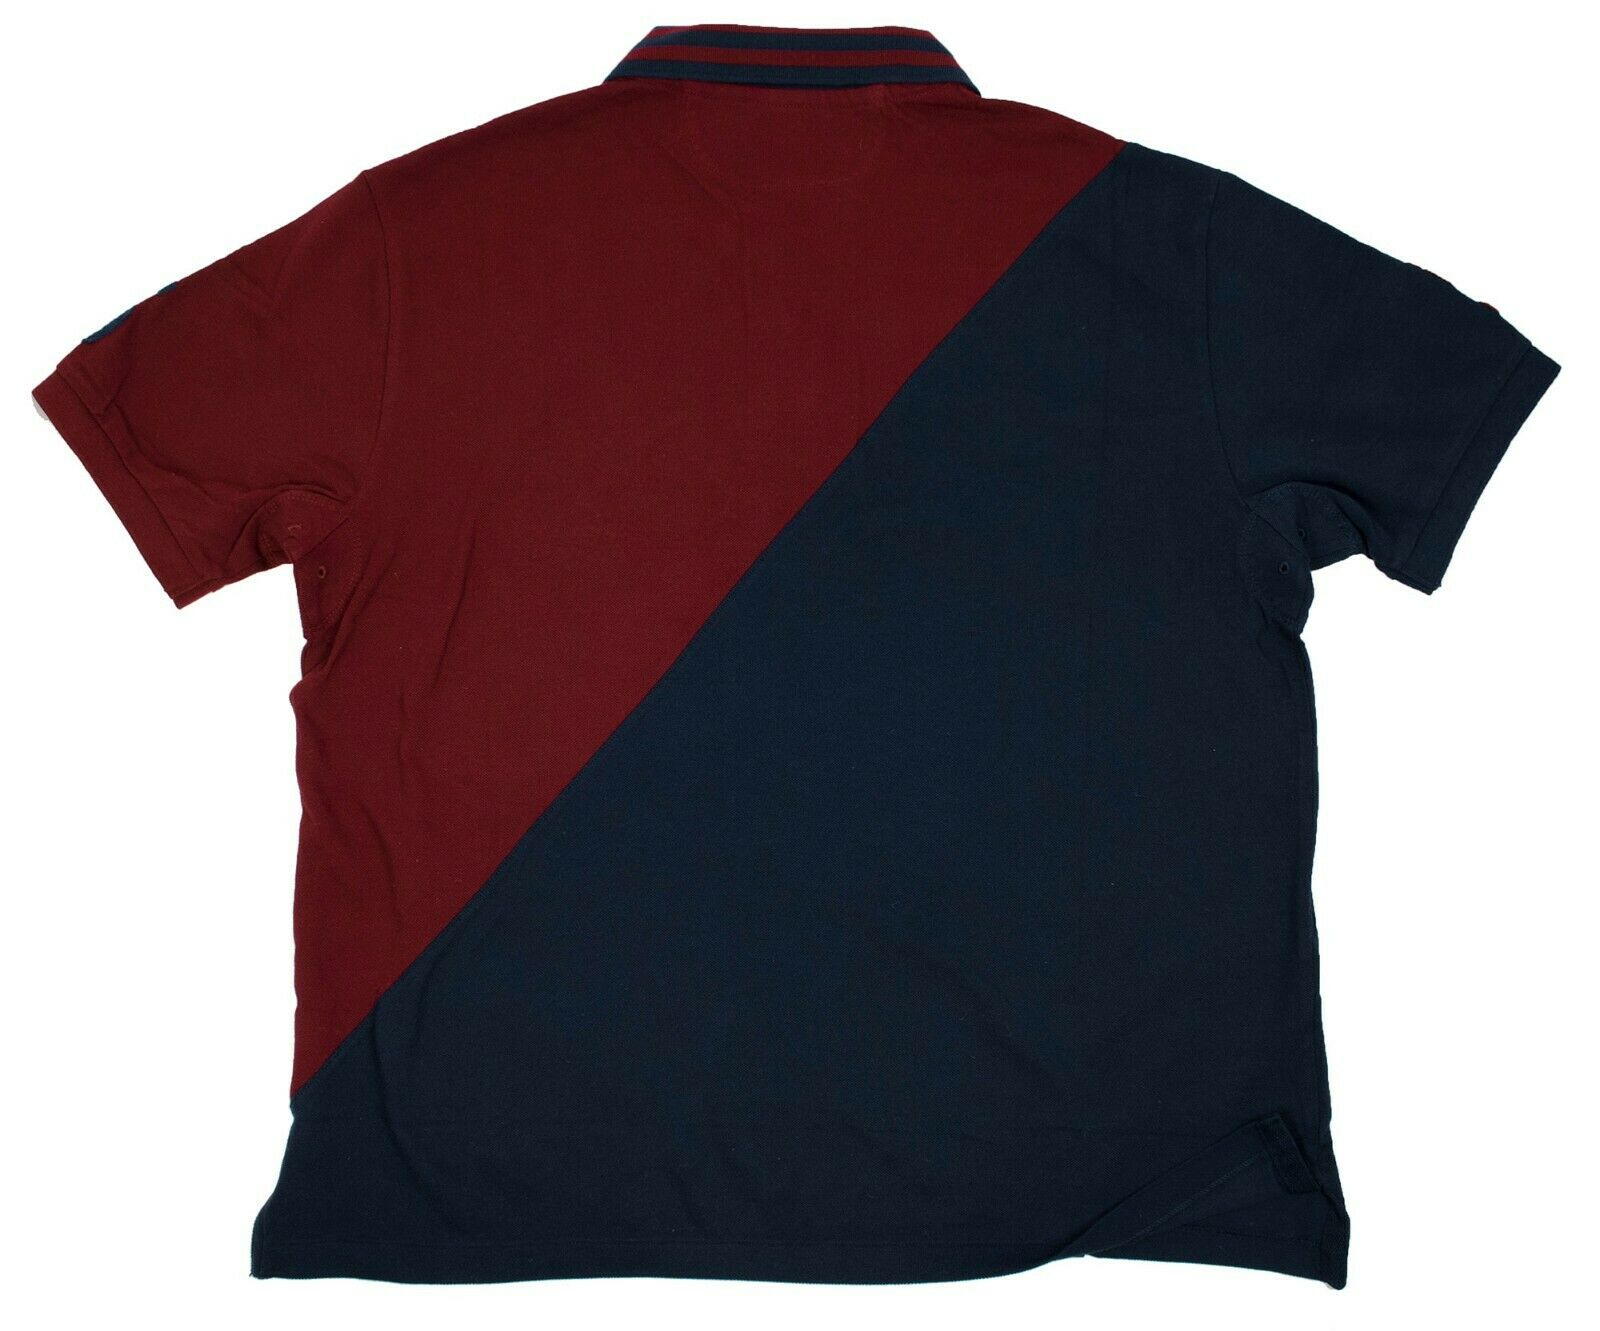 968340cf12 ... Polo Ralph Lauren Big and Tall Mens Green Navy Red Red Red Rugby Shirt  Multisizes AS ...